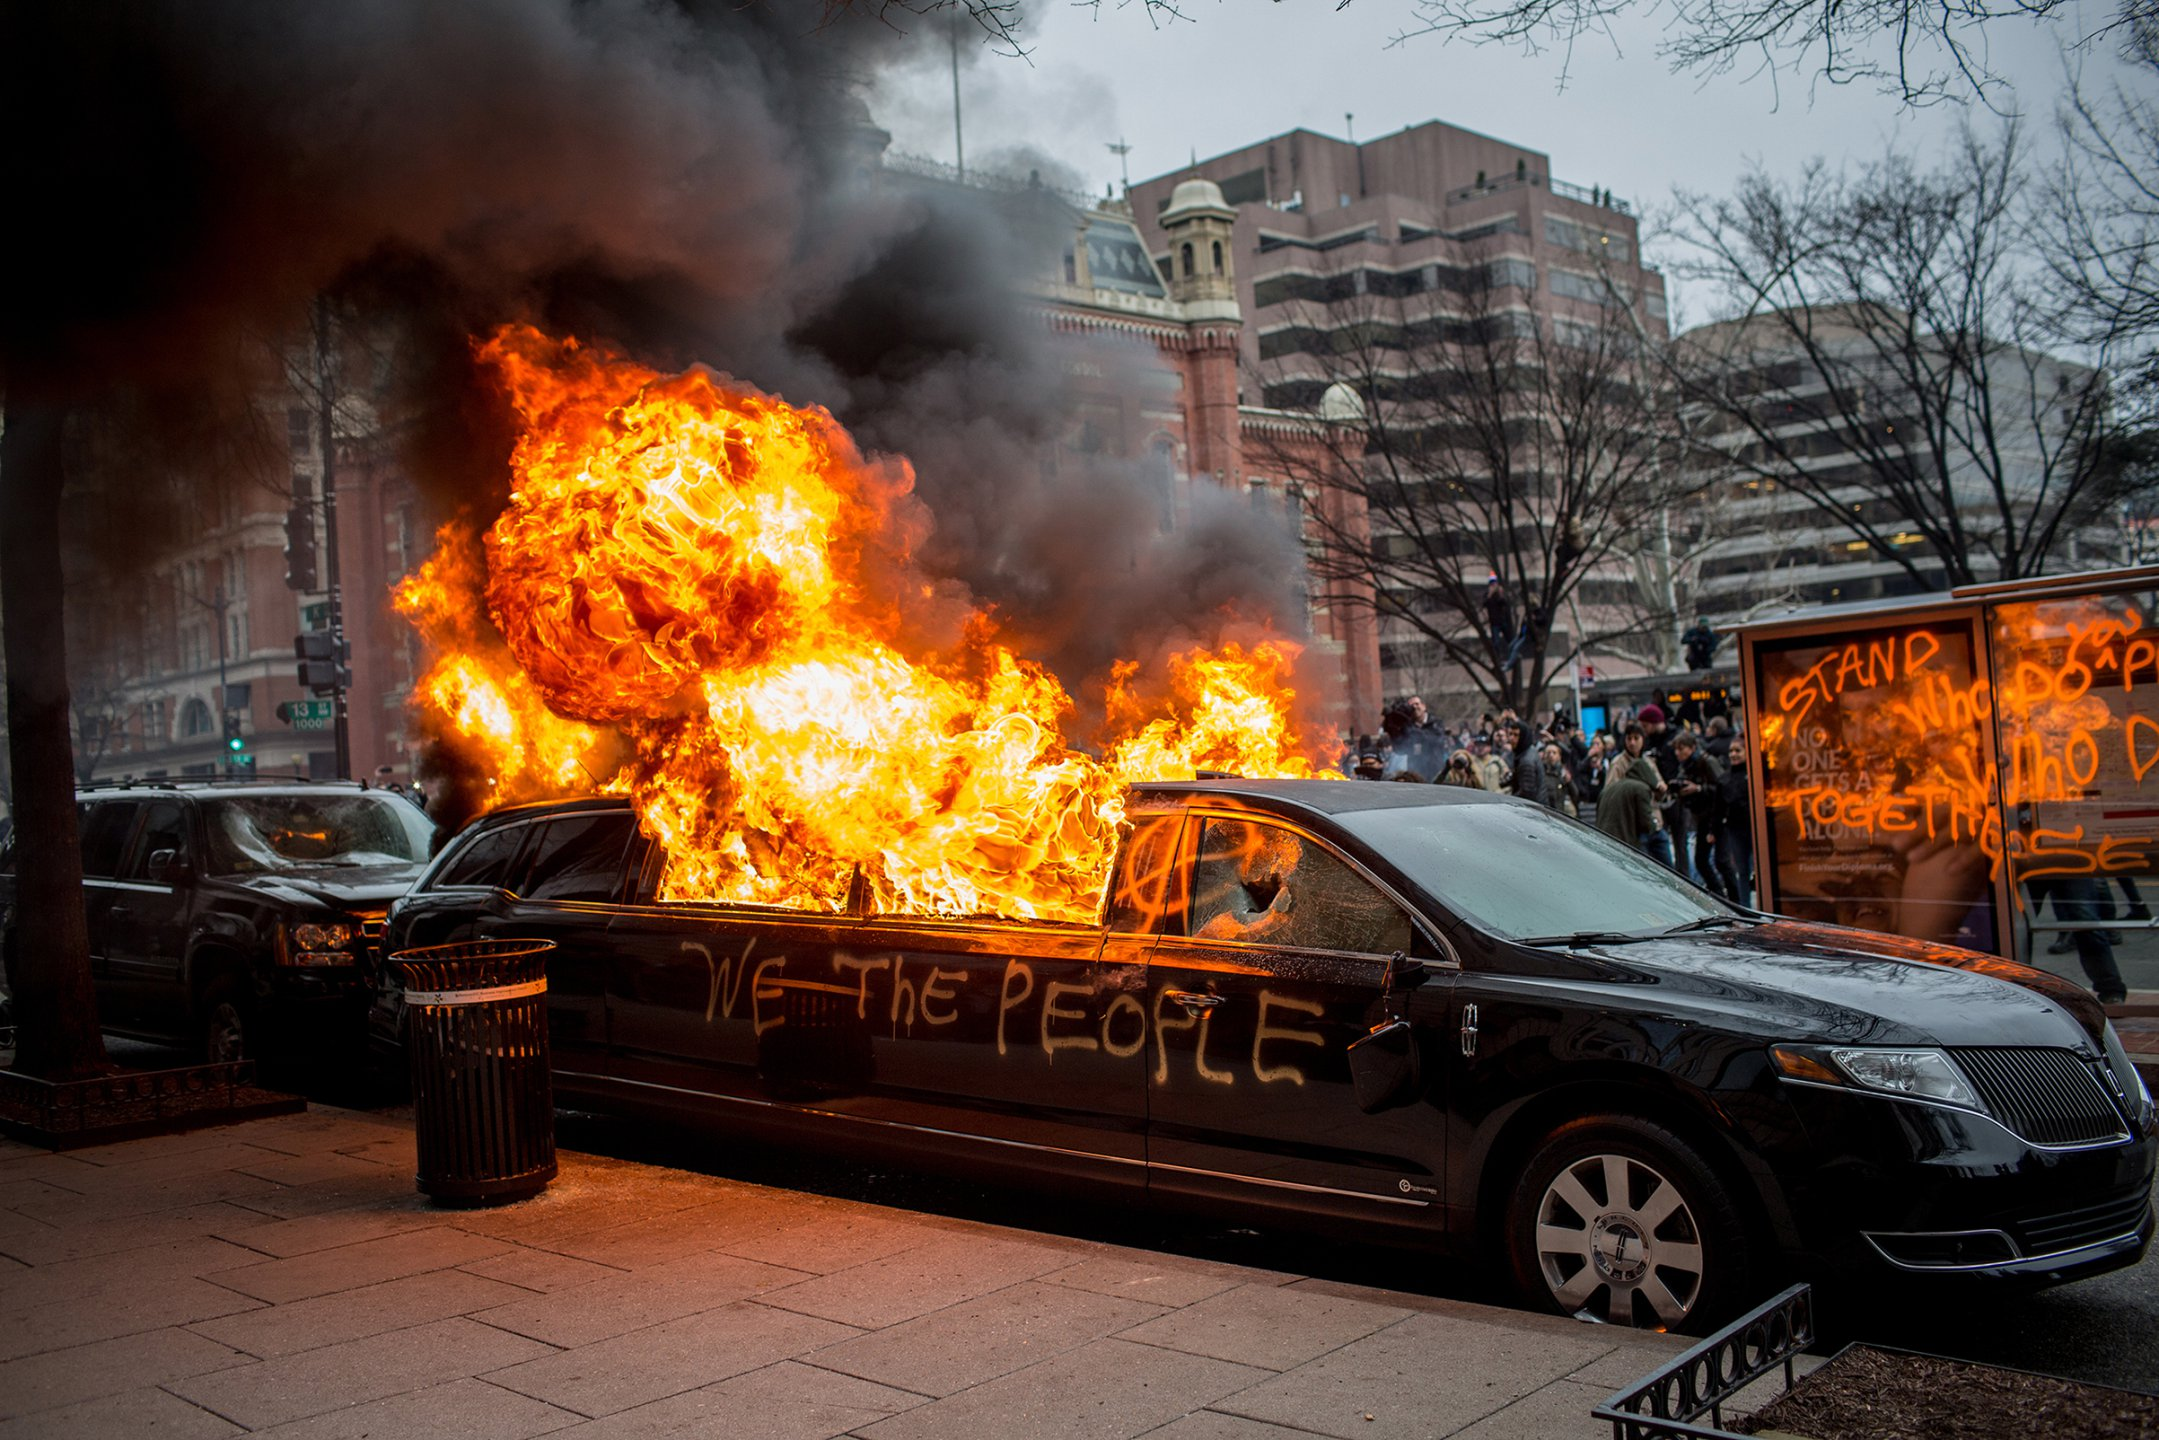 NATALIE KEYSSAR |  www.nataliekeyssar.com  |  @nataliekeyssar   A limousine was set ablaze by a group of protesters against Donald Trump's inauguration near 13th and K Streets in Washington, D.C., on January 20, 2017.  [ TIME ]